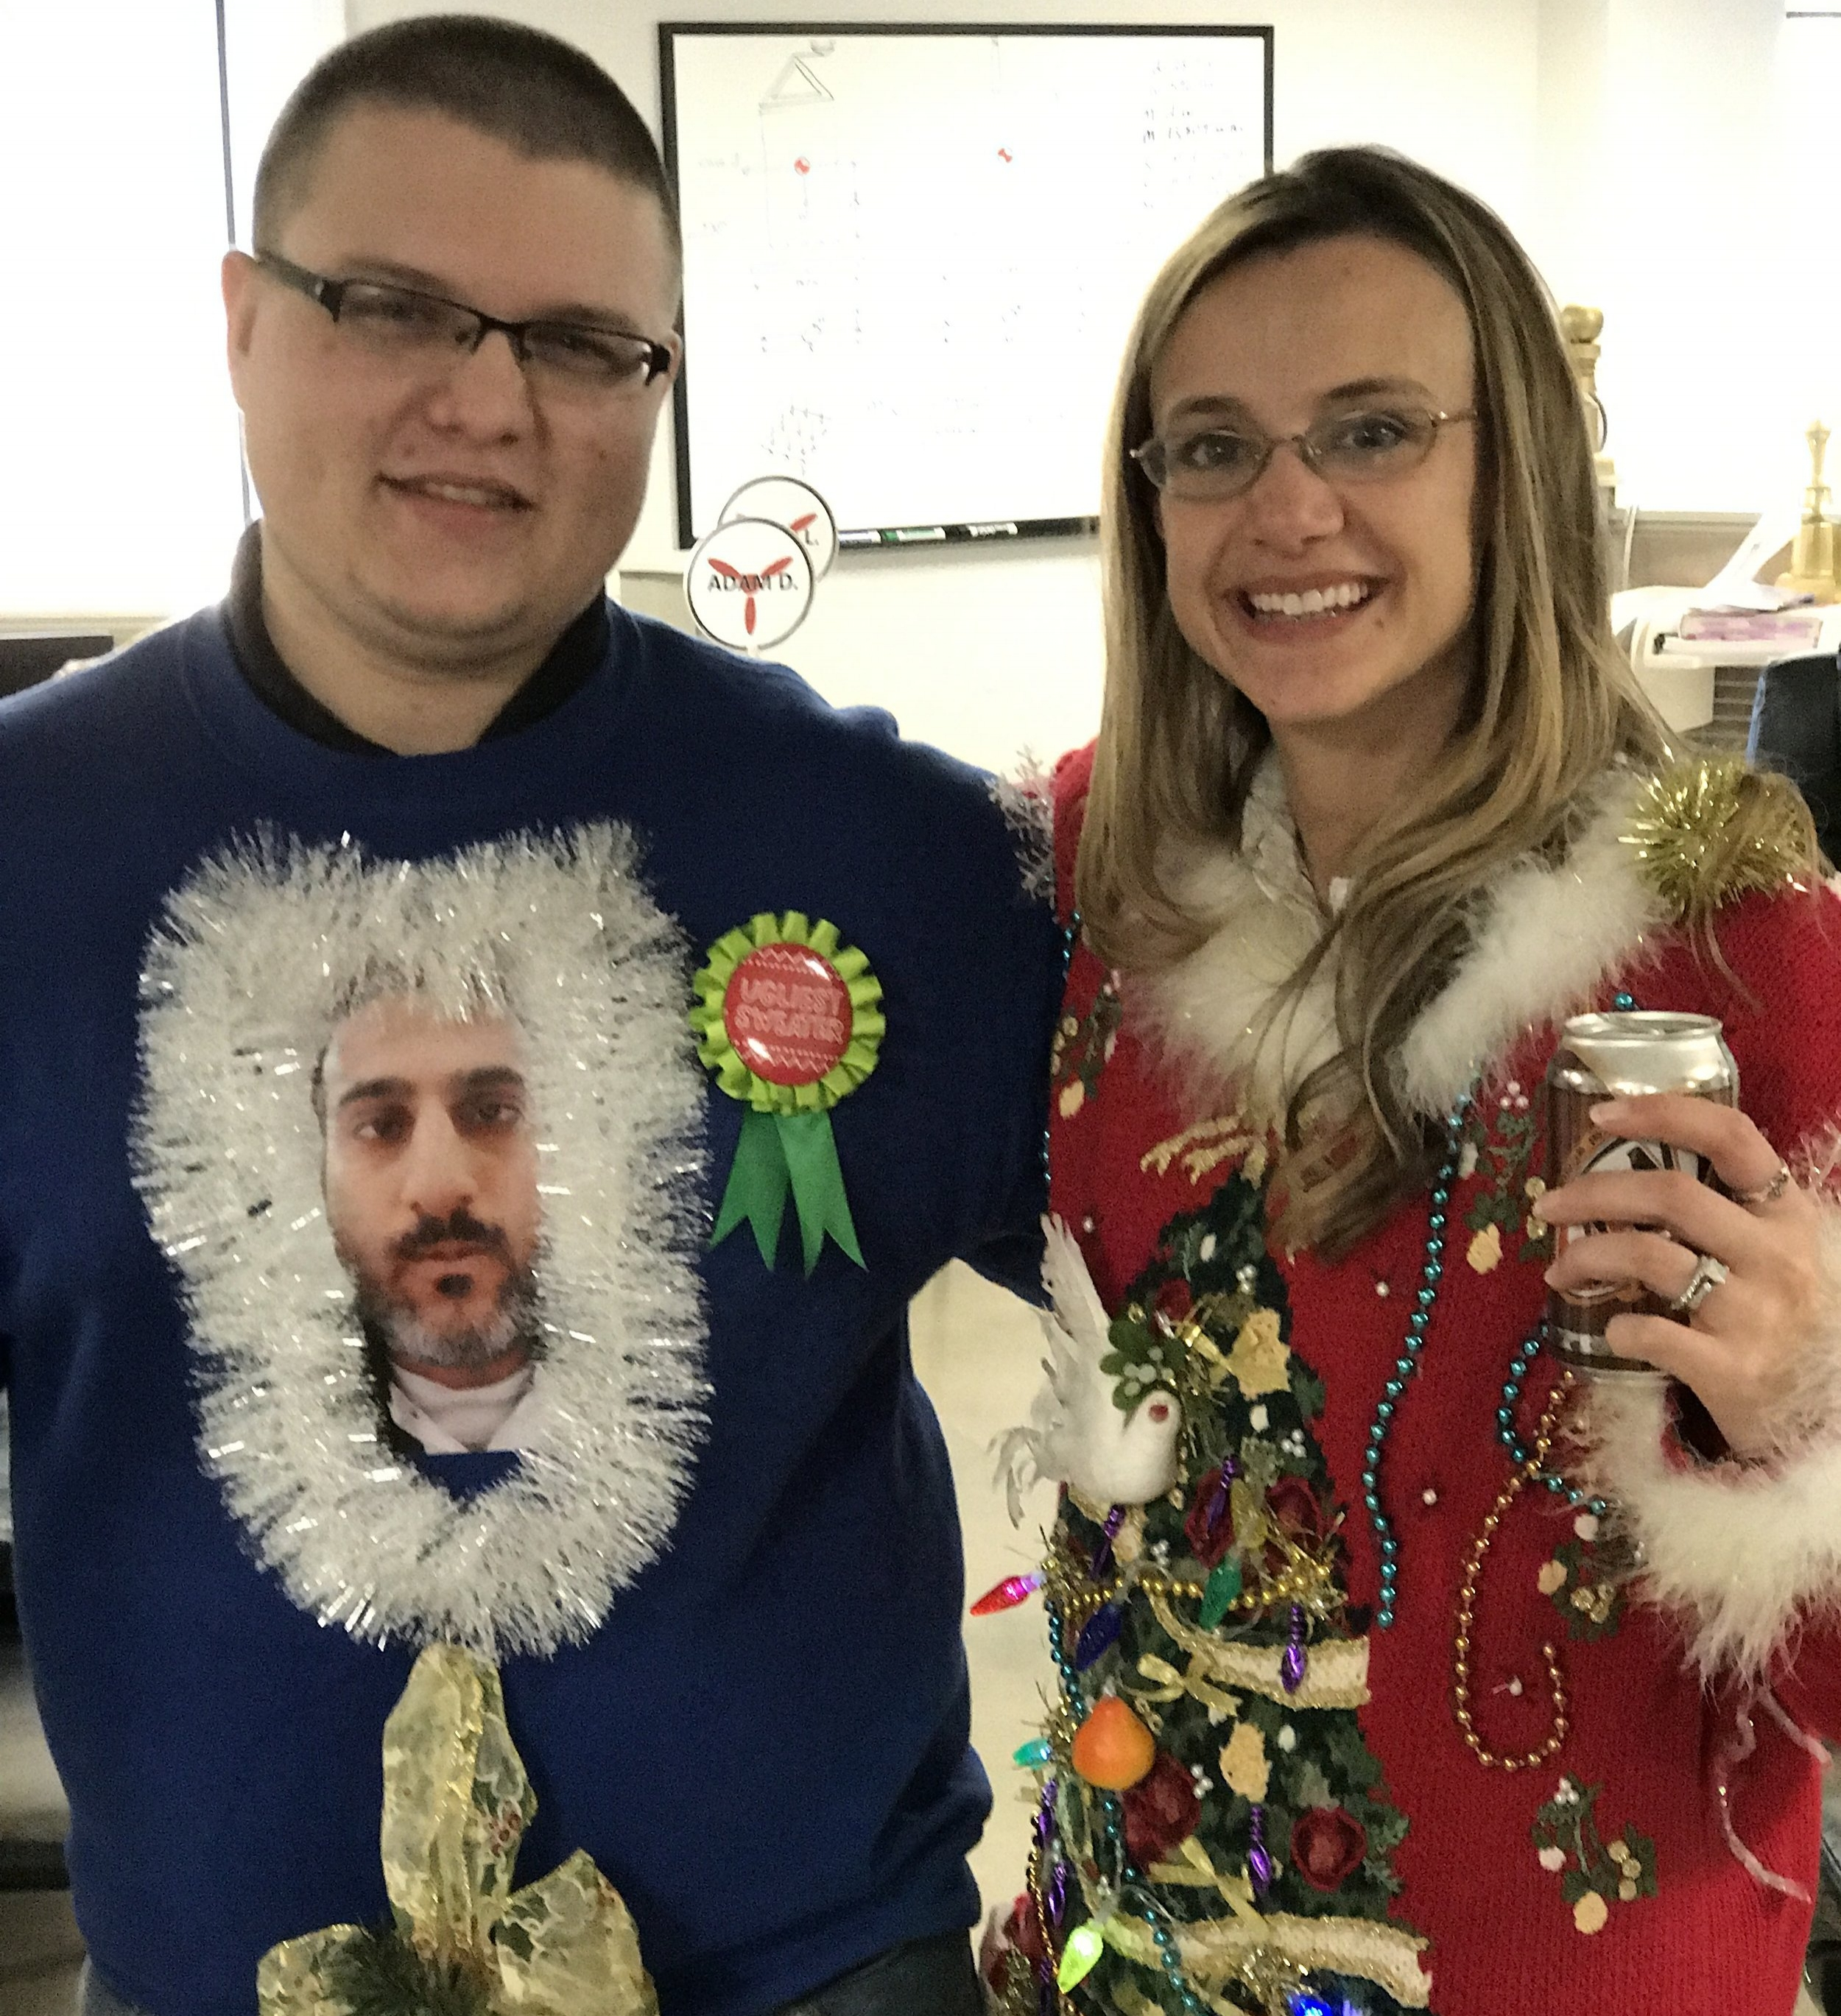 Winner of Ugly Christmas Sweater Contest !